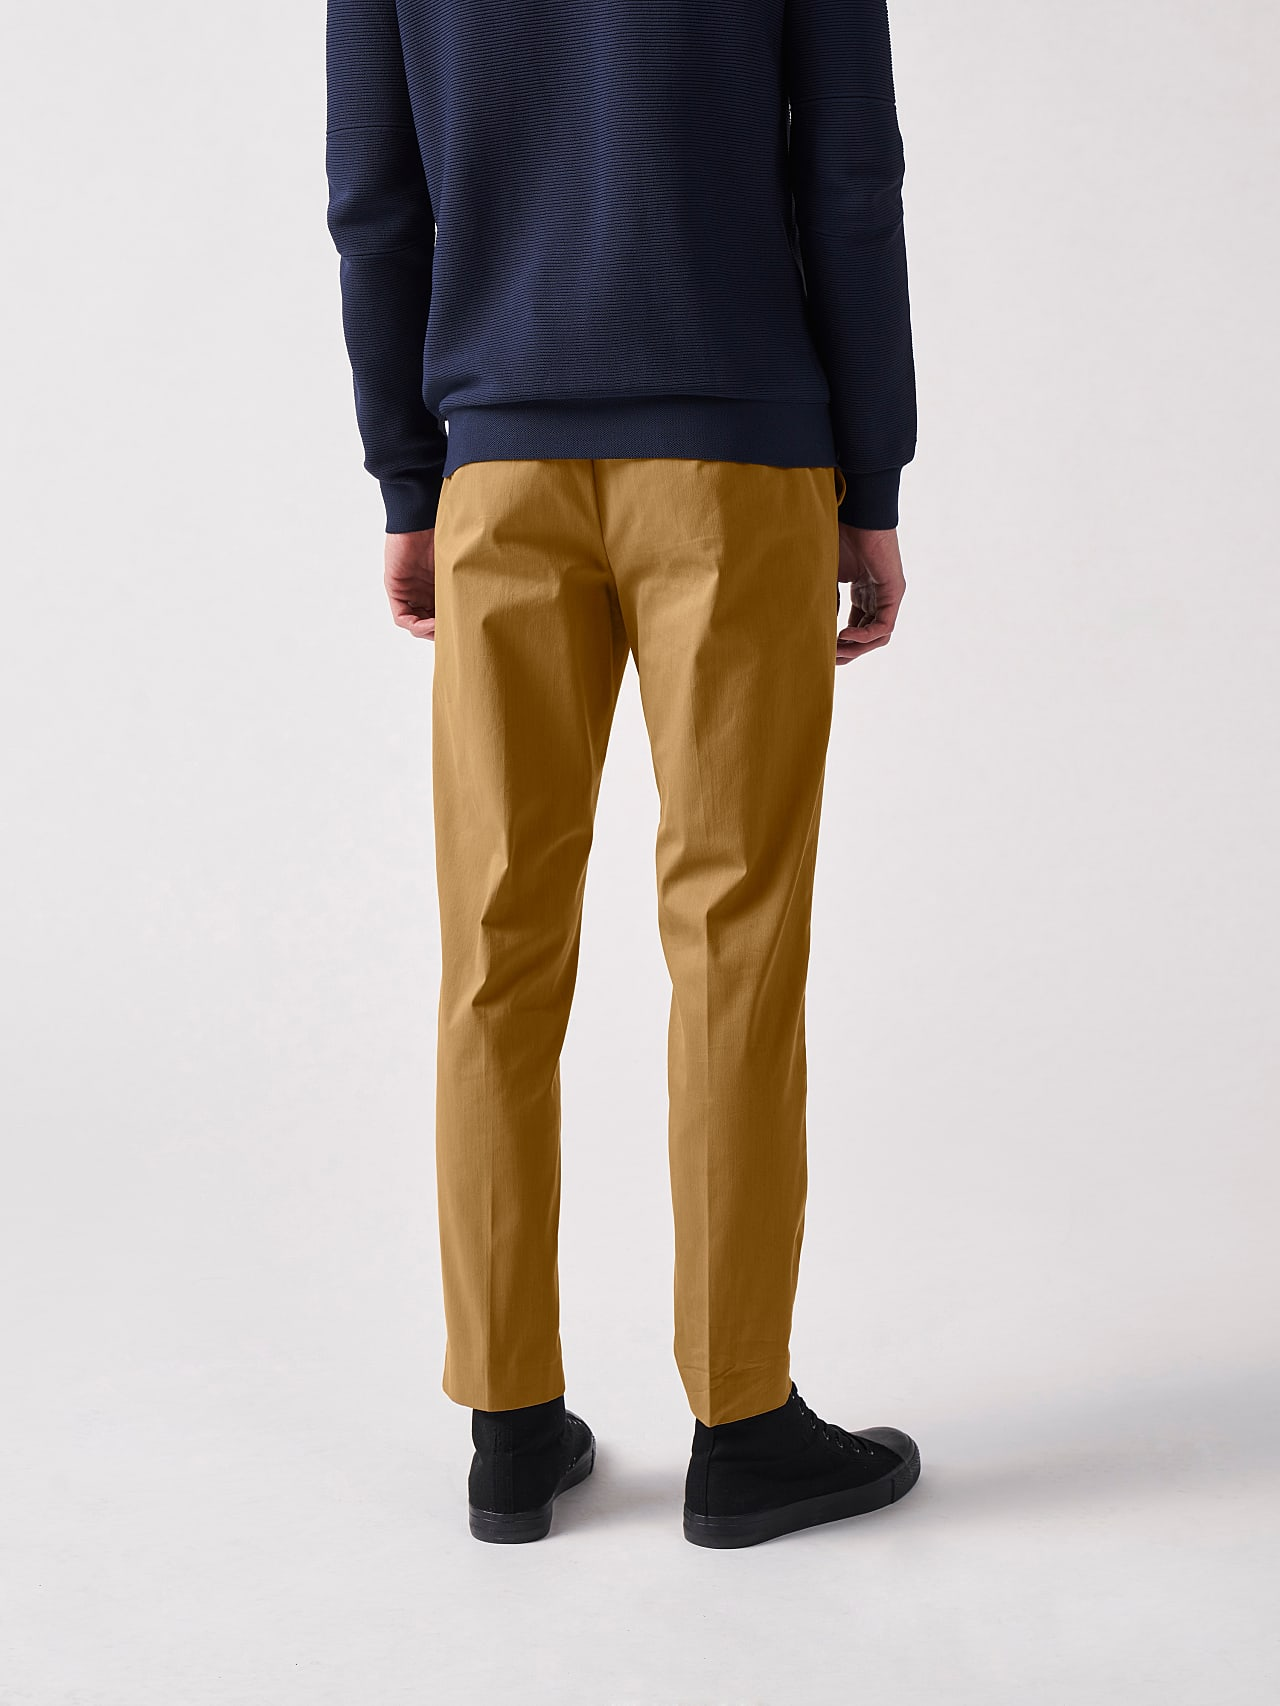 PLAIZ V2.Y5.01 Water-Repellent Cotton-Stretch Chino brown Front Main Alpha Tauri